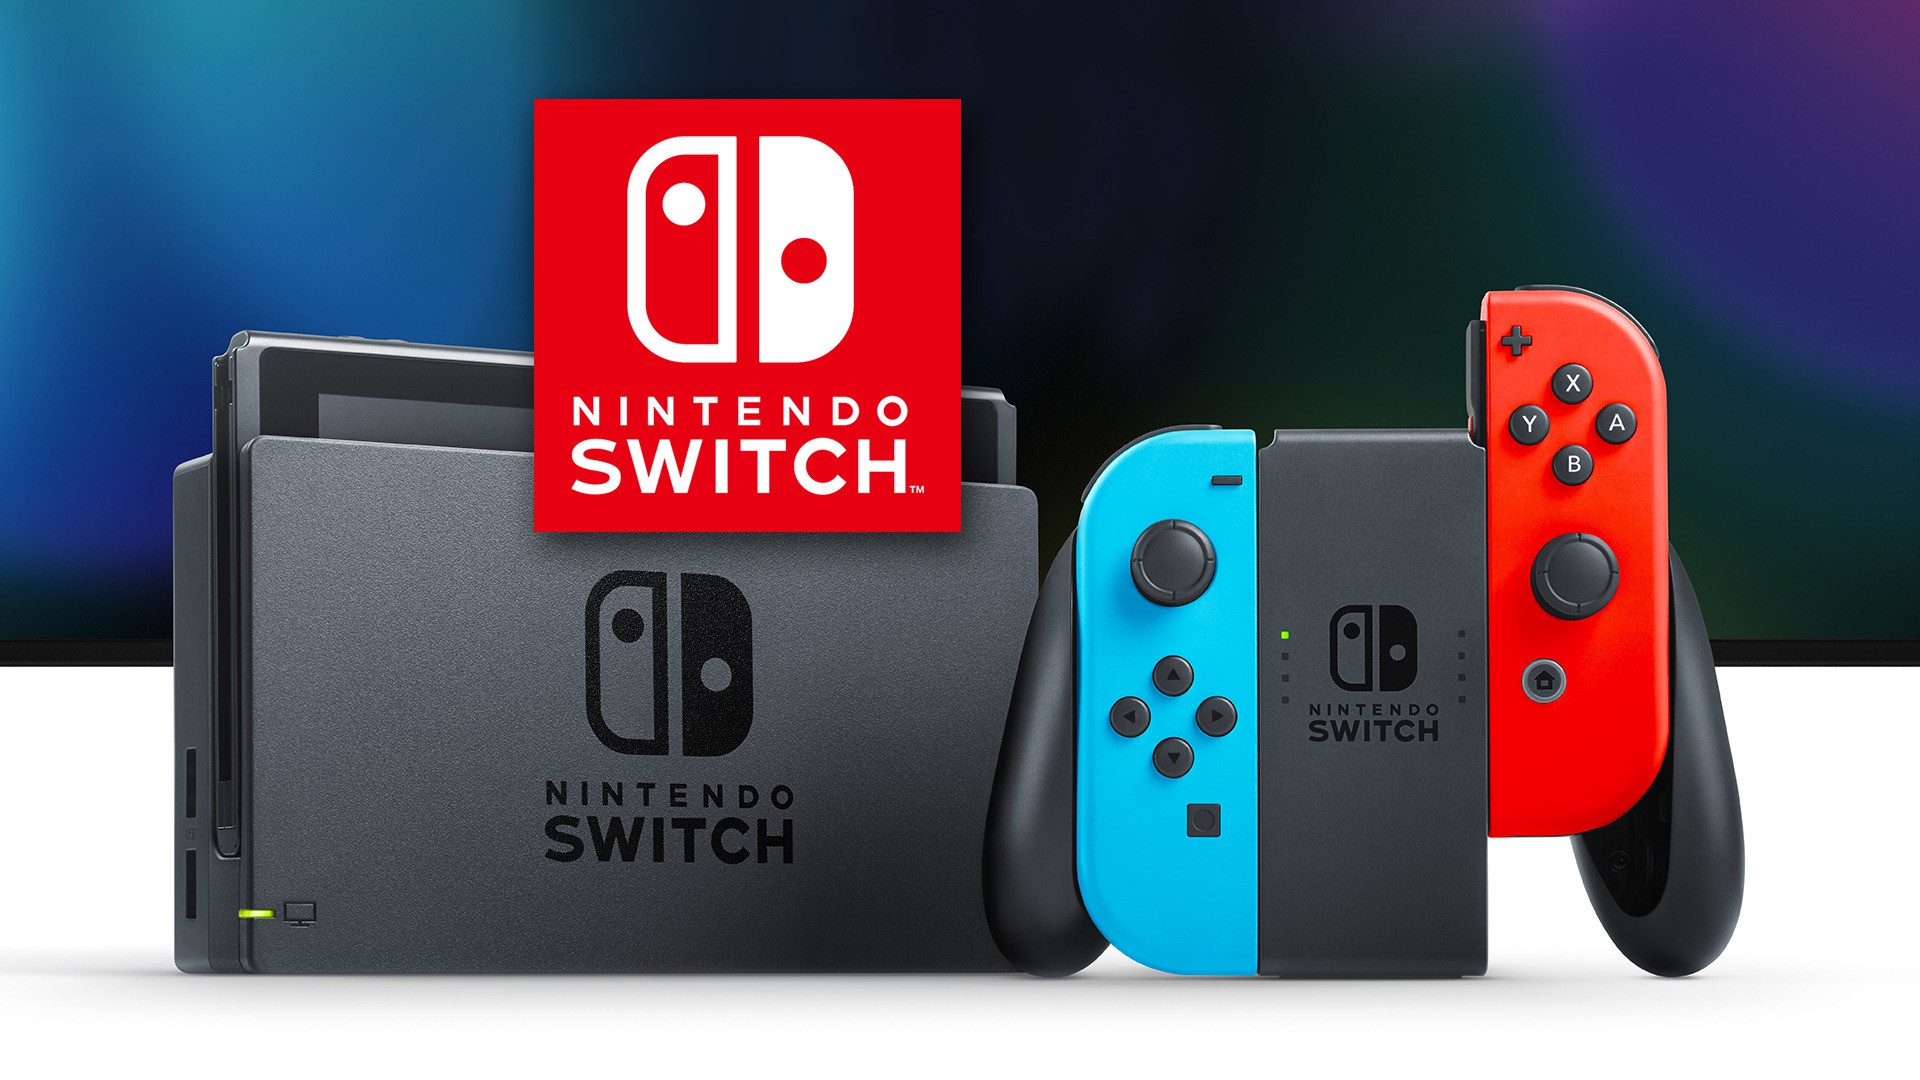 Nintendo vende mas de 20.000.000 de Switch